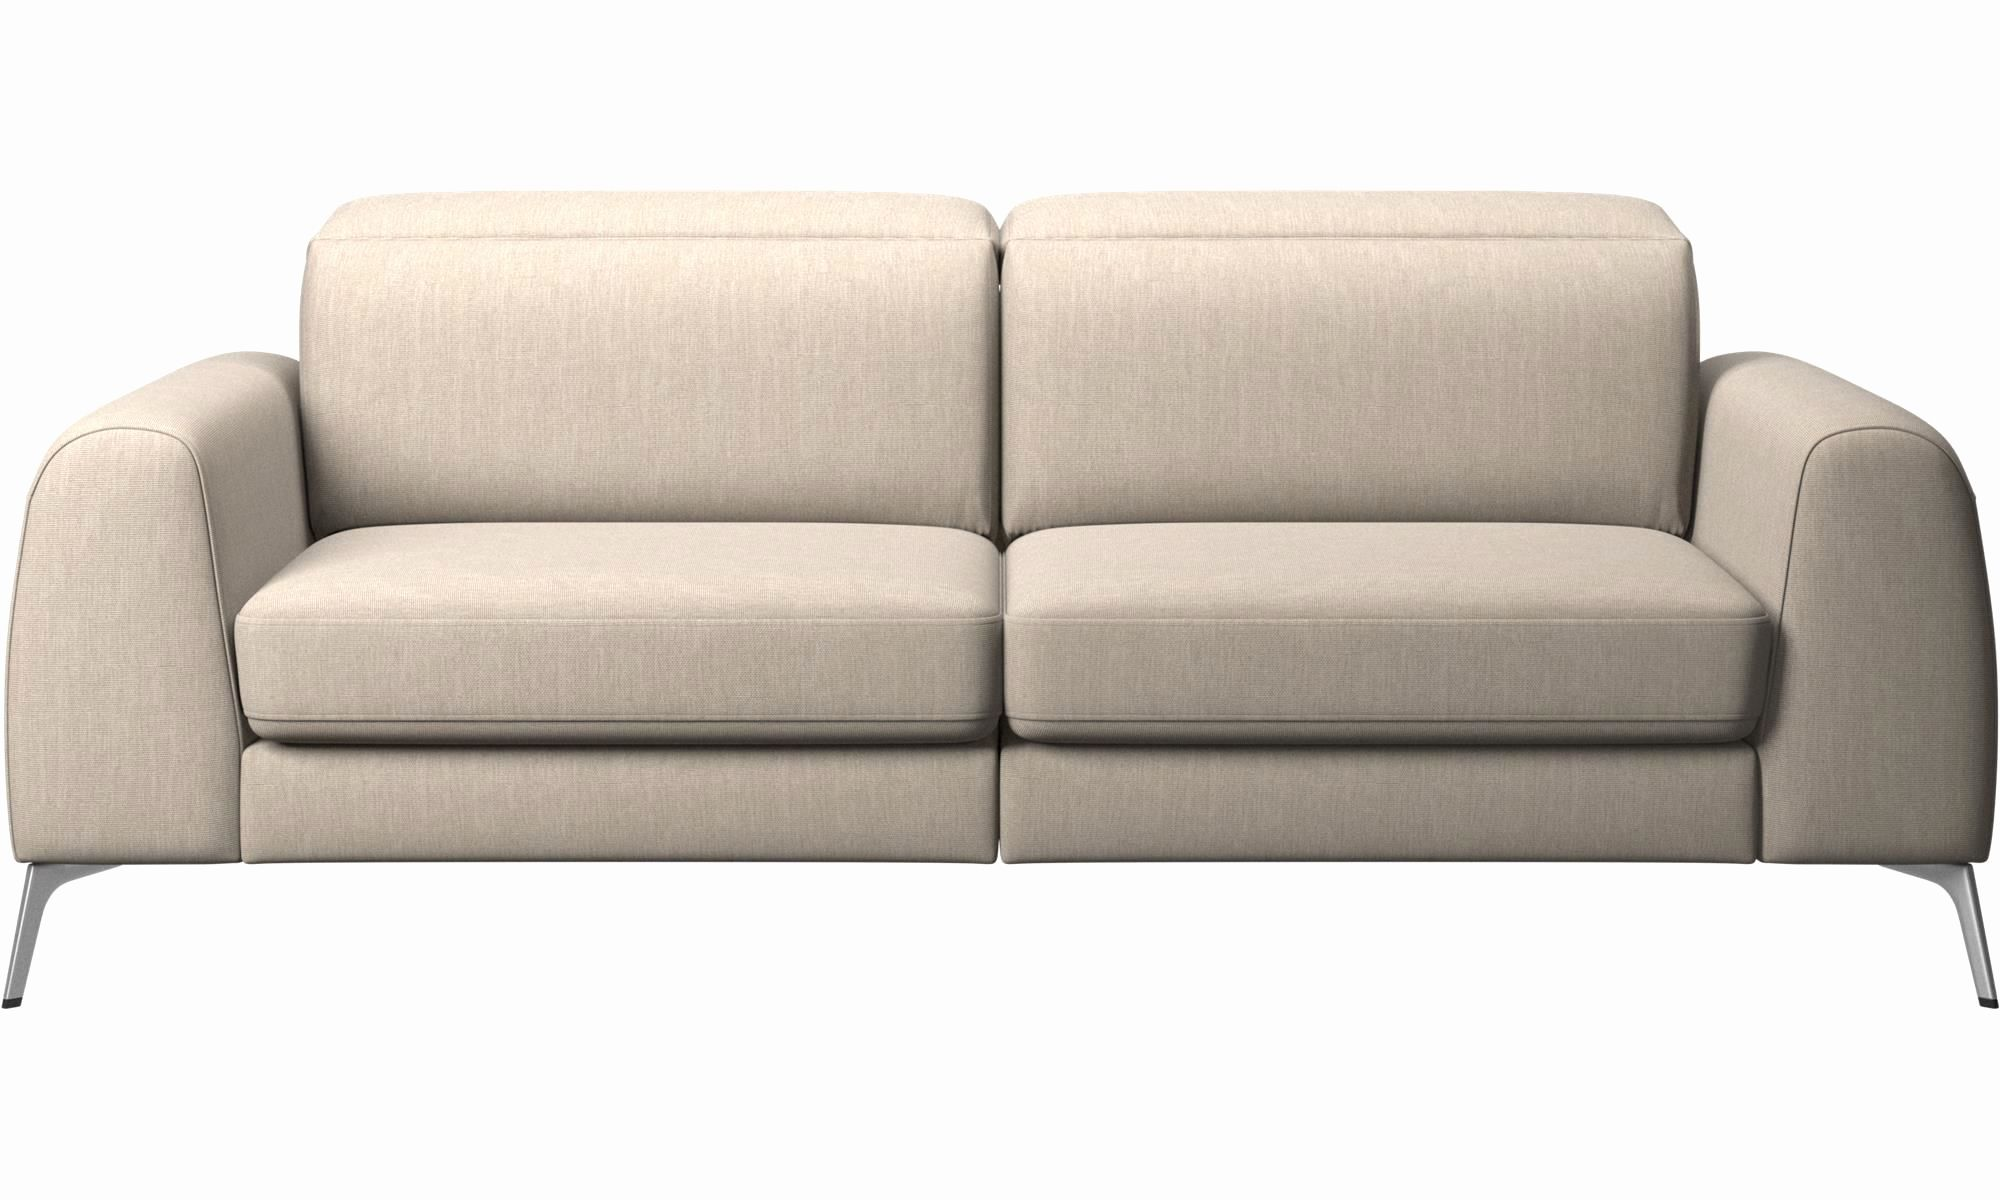 John Lewis Leon Sofa Off White Sofa Bo Concept For Colour Reference Only